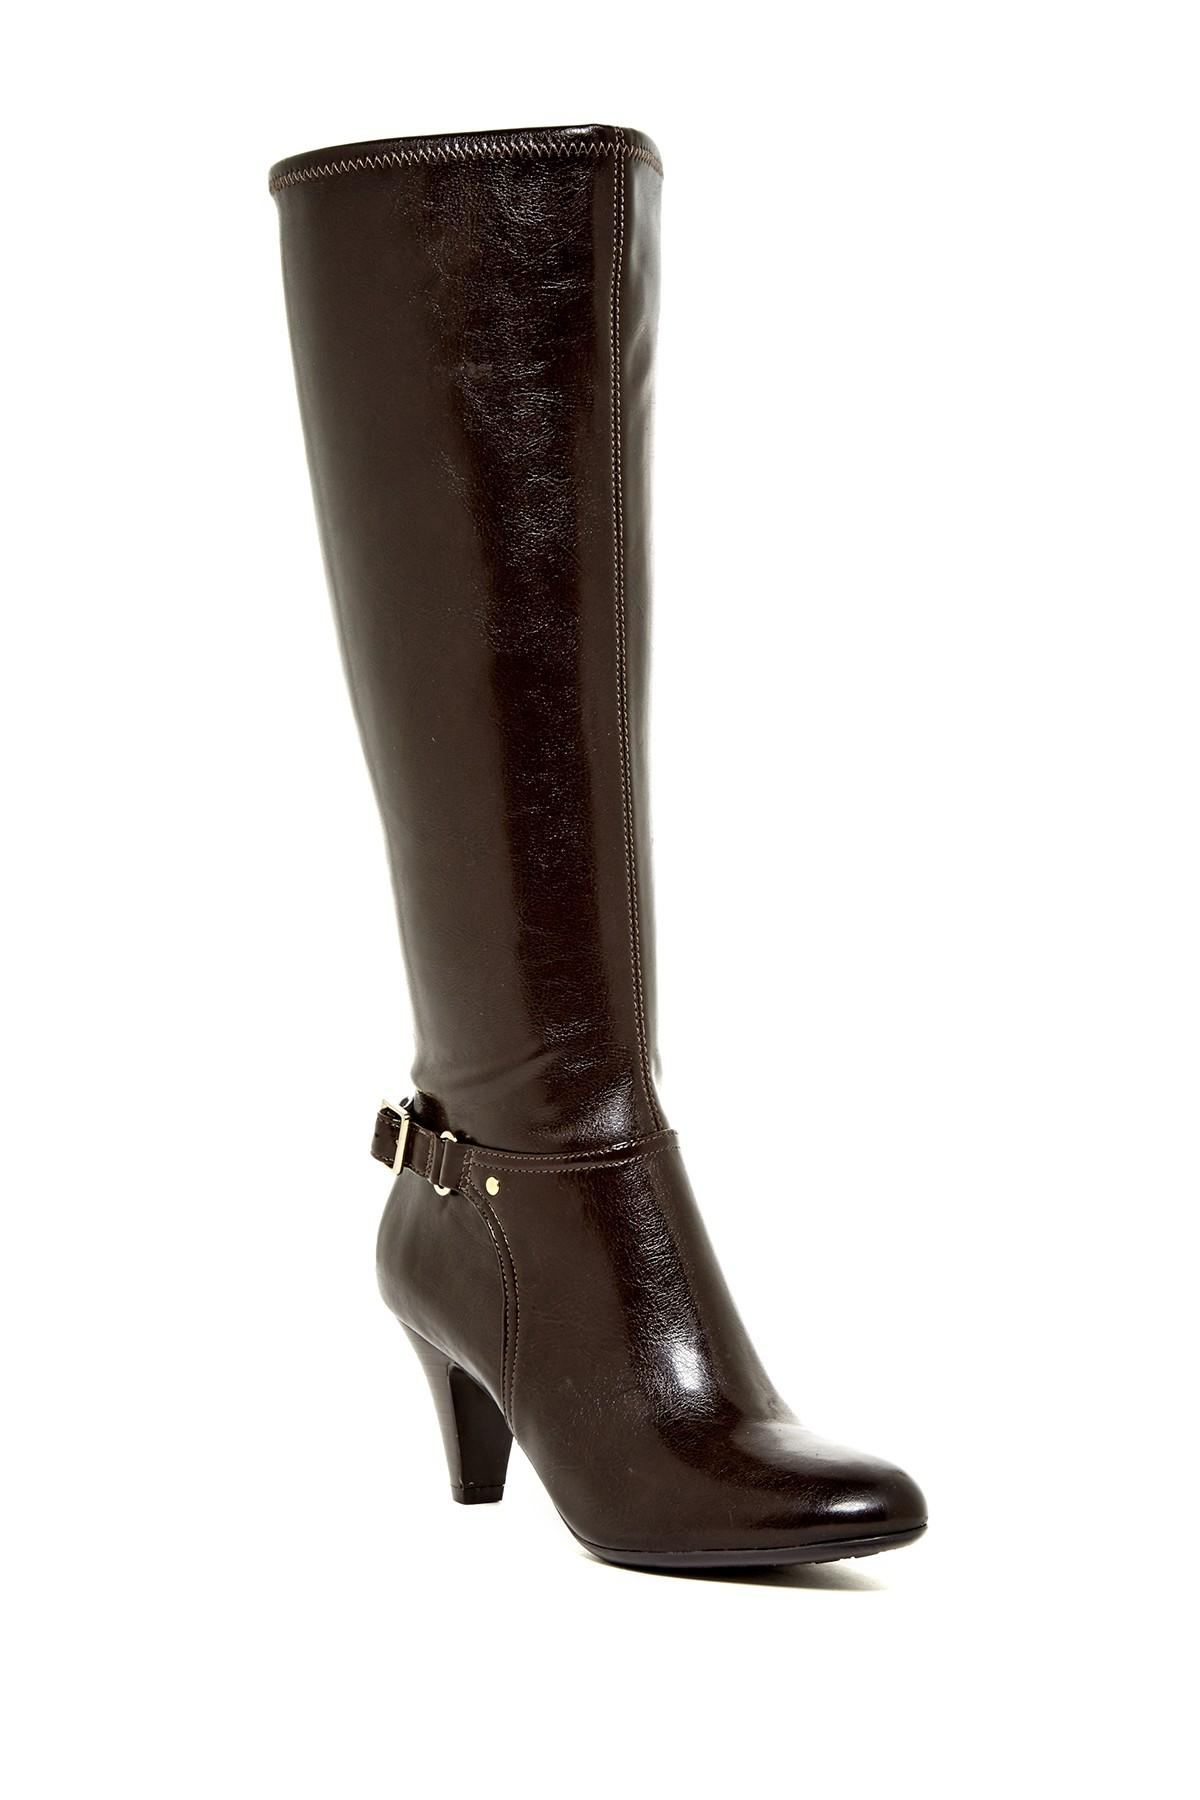 Browse the best Women's Wide Calf Boots at Shoe Carnival. Perfect for muscular and plus-size women, check out our broad selection of wide calf boots, both in store and online.